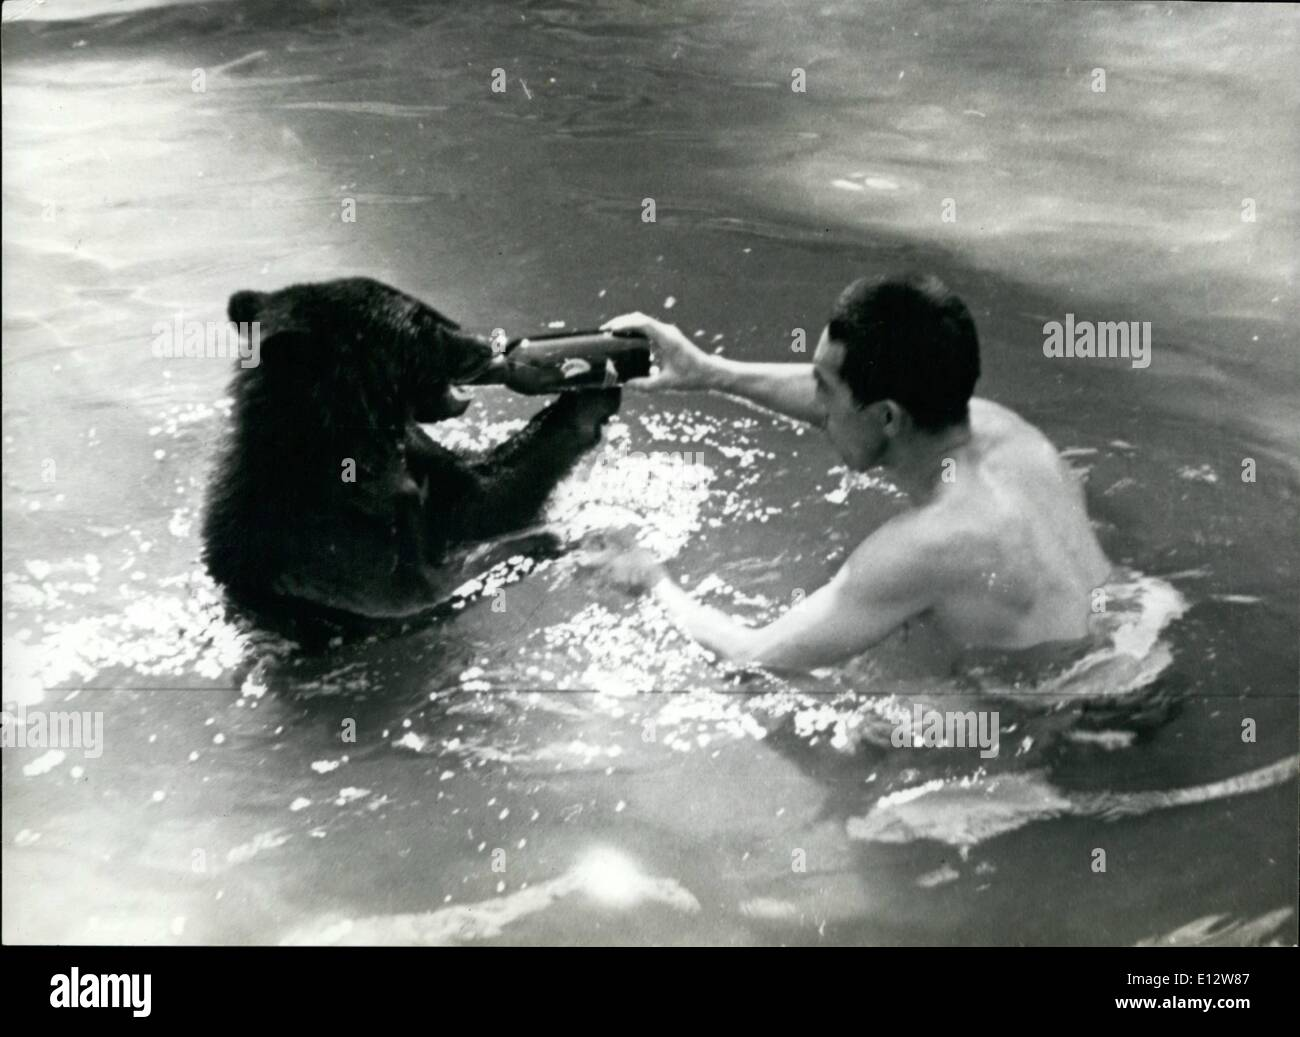 Feb. 25, 2012 - A Japanese bather shares his bottle of beer with another bather, this time a young bear. - Stock Image